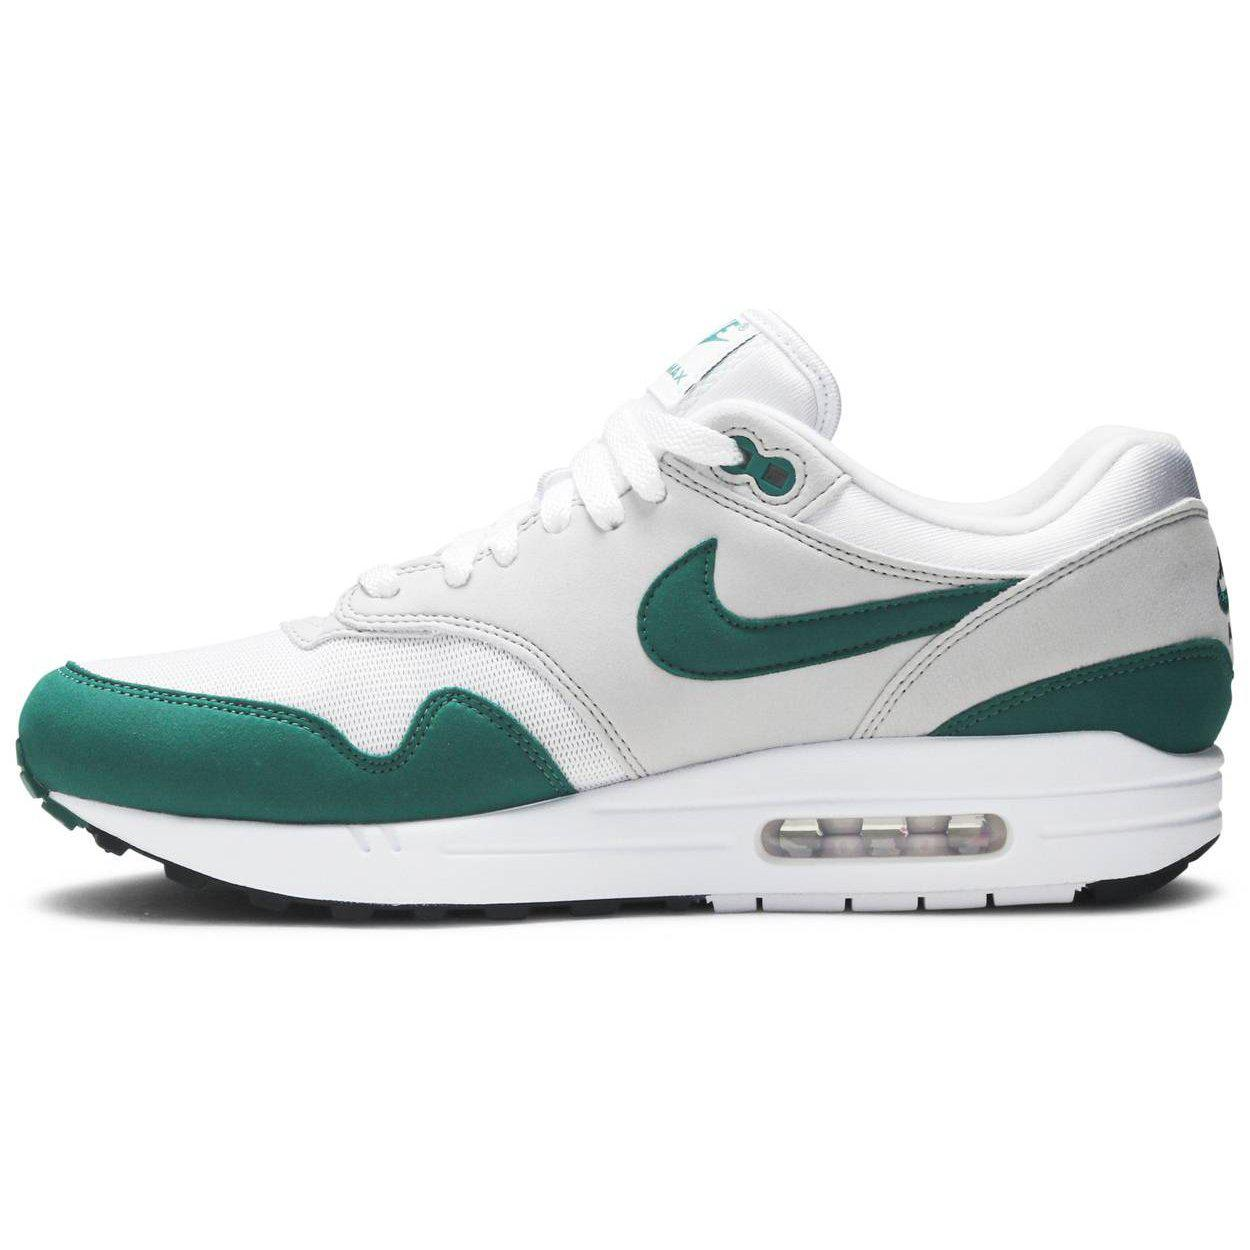 Nike Air Max 1 'Anniversary Green' | Waves Never Die | Nike | Sneakers